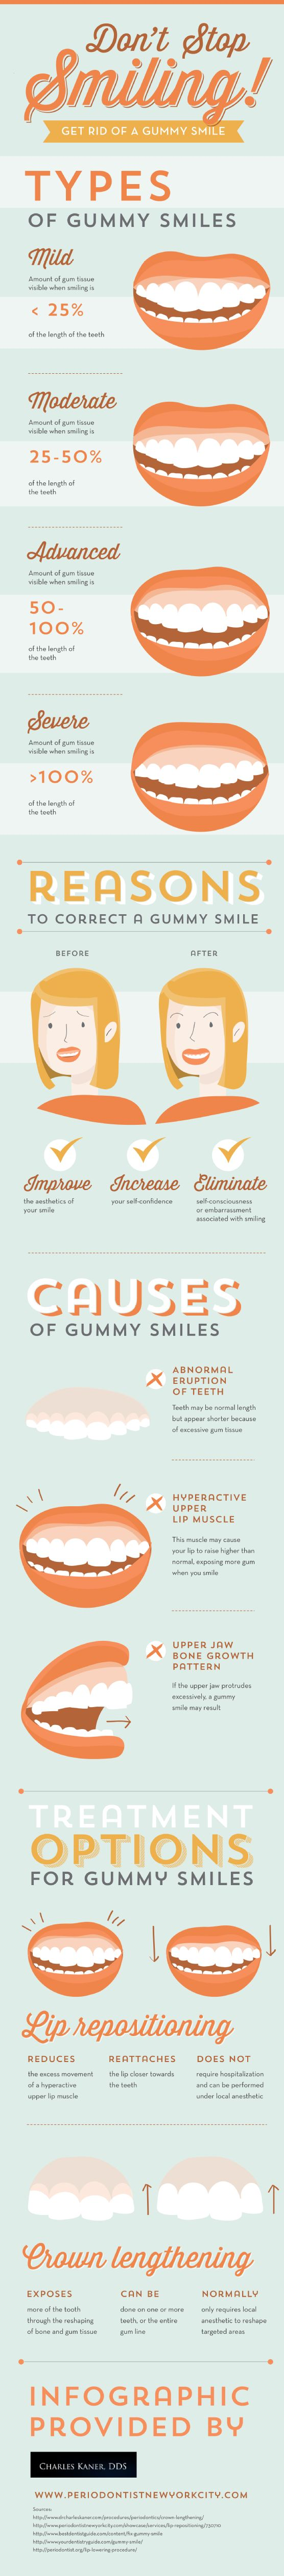 What causes the gum tissue to overlap teeth in certain people's smiles? Gummy smiles can be caused by the abnormal eruption of teeth, hyperactive upper lip muscles, or the upper jawbone growth pattern. Find out how different treatments can help improve gummy smiles by clicking on this infographic.